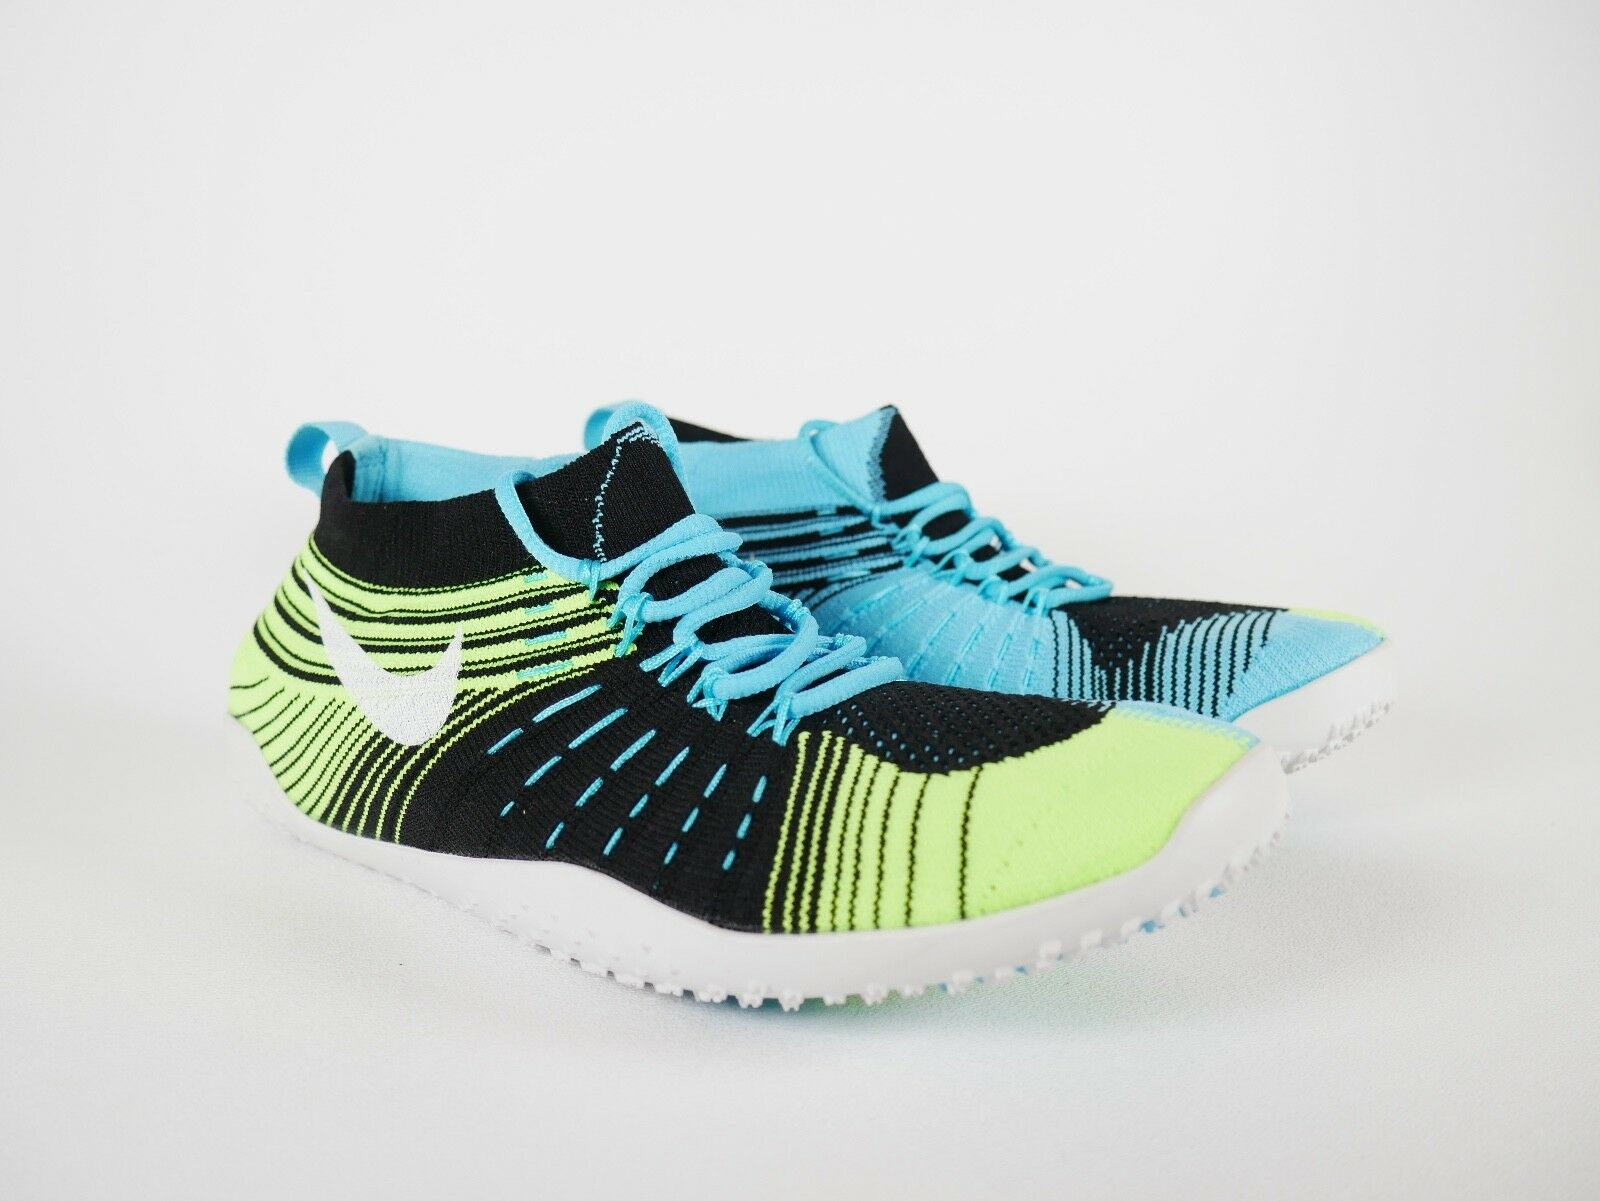 Nike Womens Hyperfeel Cross Elite Volt Black Turquoise 638348-001 Comfortable The latest discount shoes for men and women